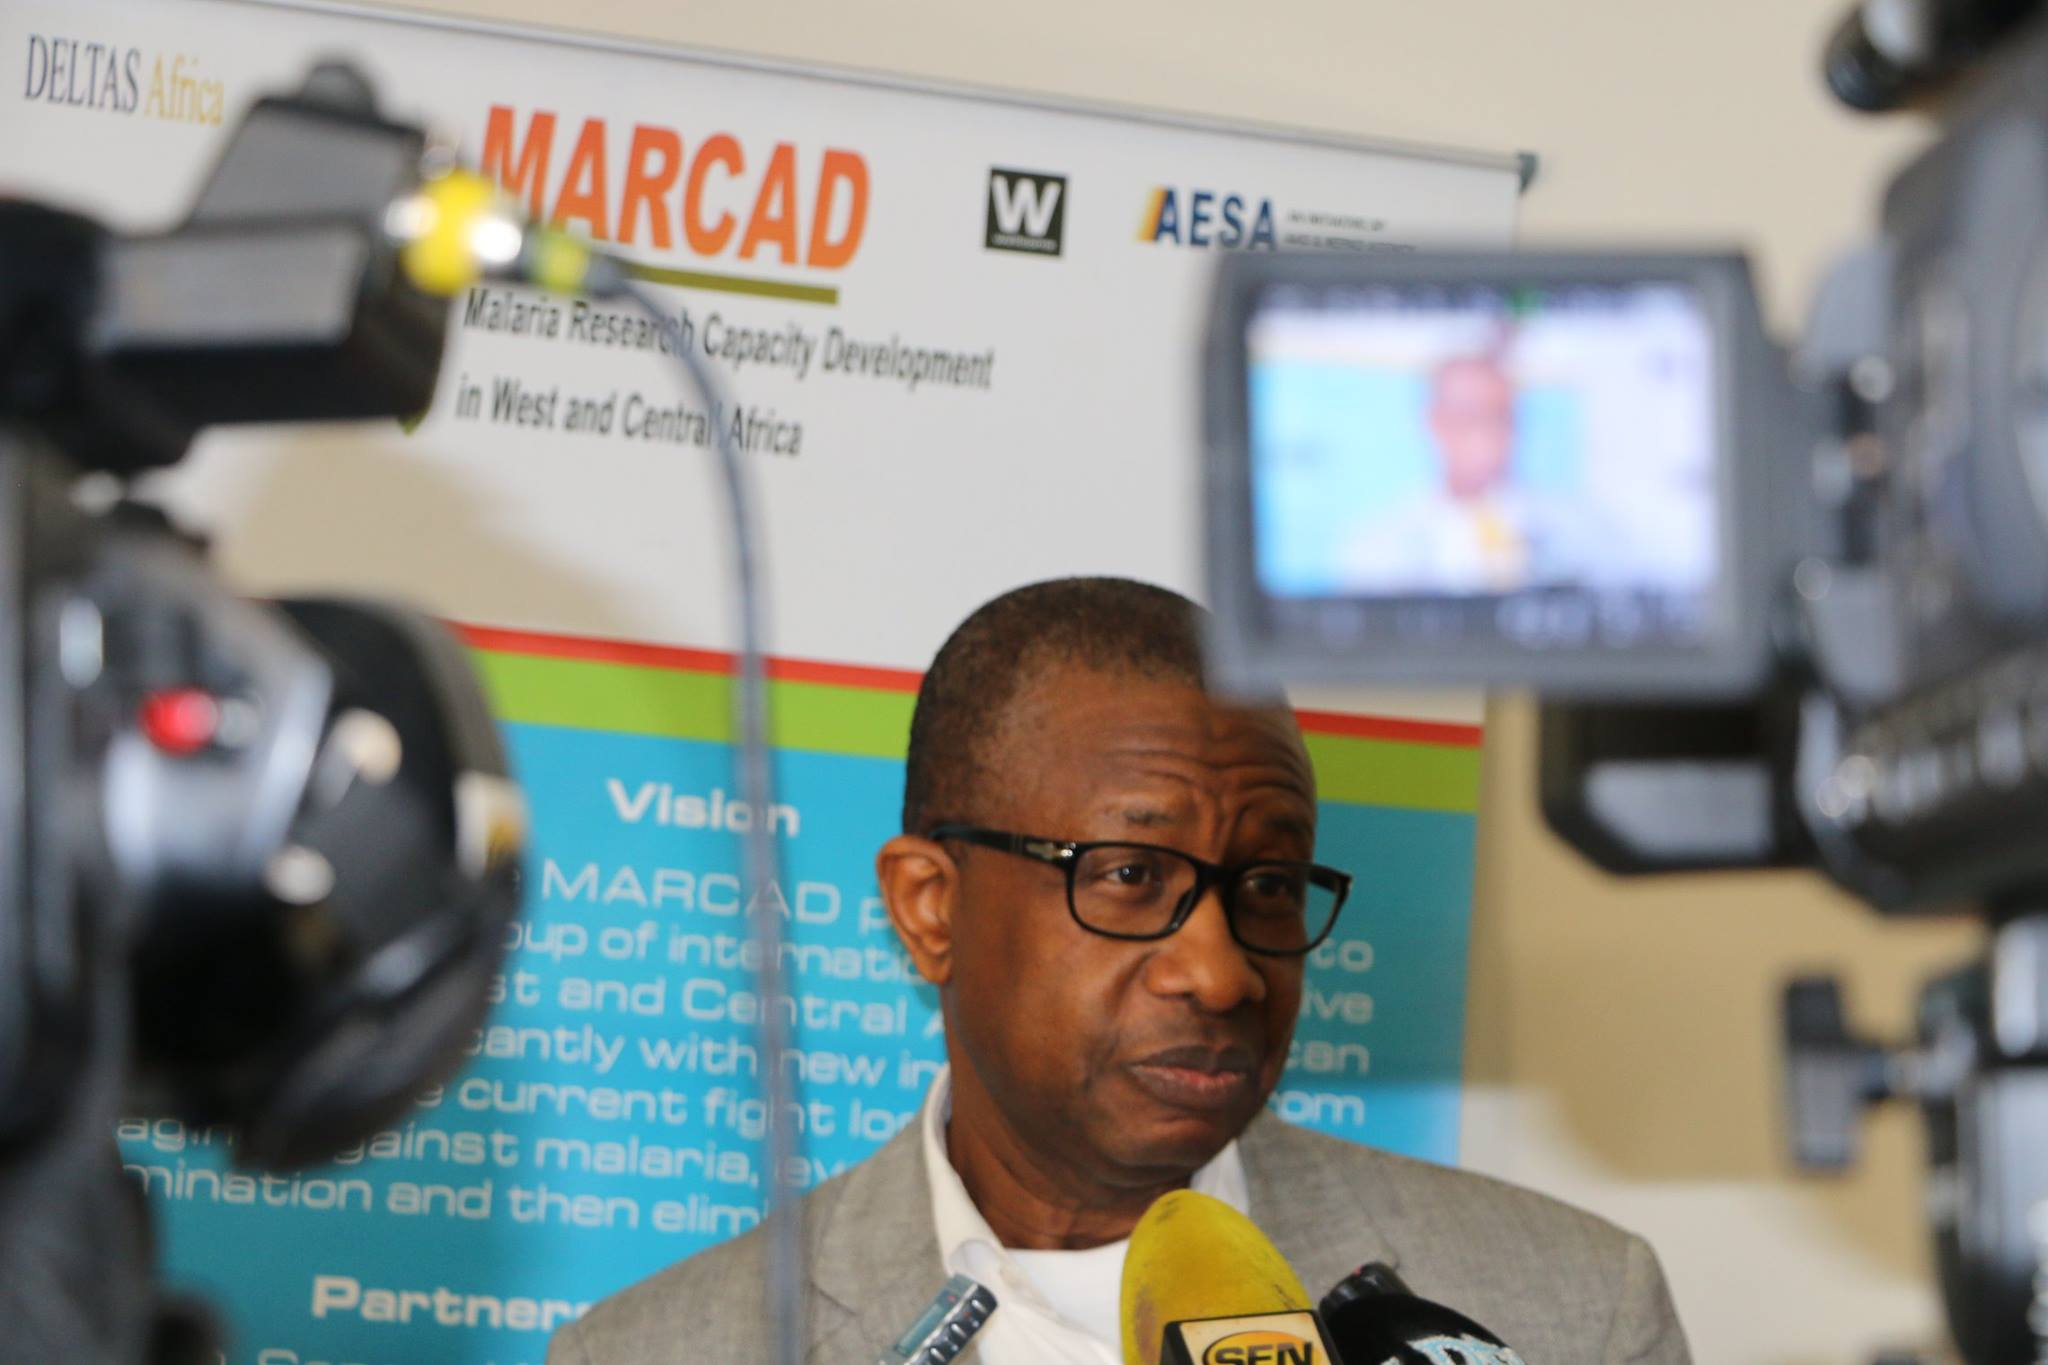 Prof. Oumar Gaye UCAD Senegal, : Director of the MARCAD Programme